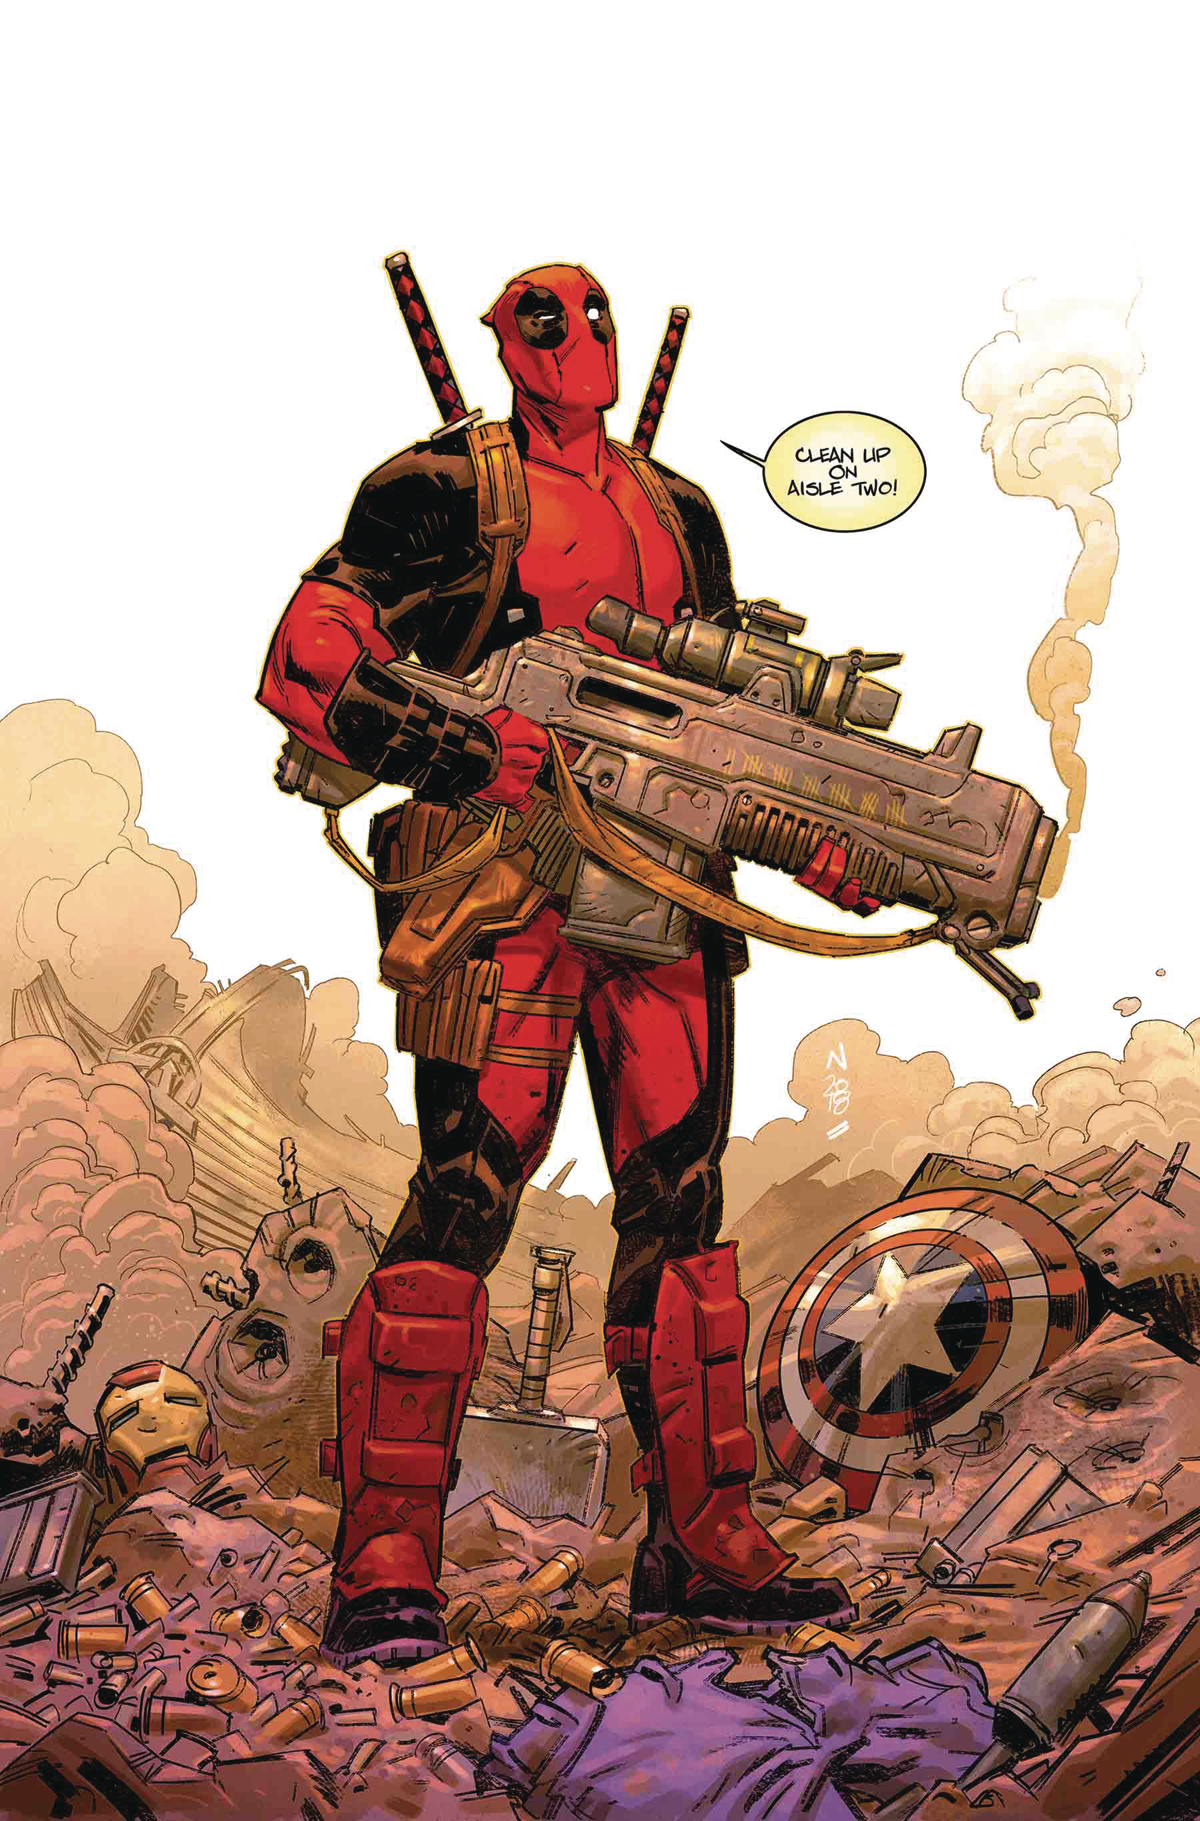 DEADPOOL #1 BY KLEIN POSTER